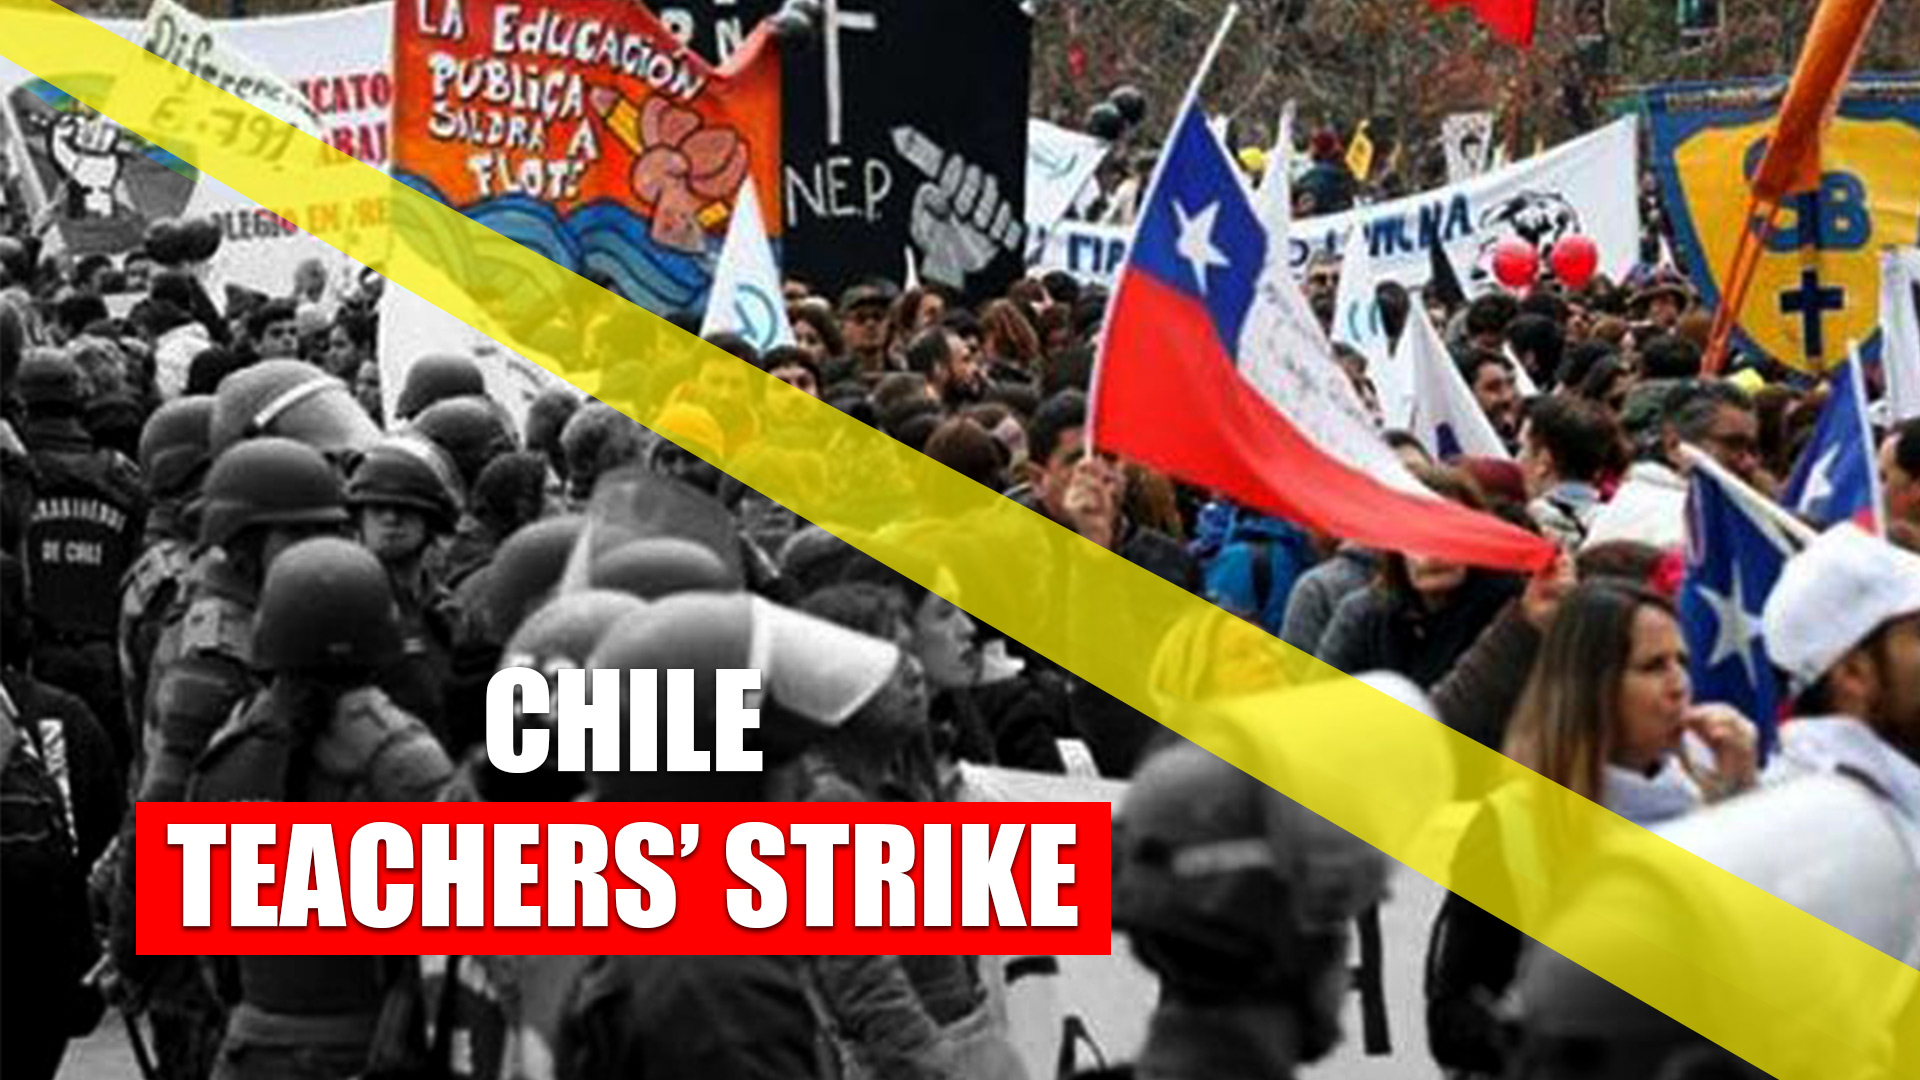 Chile teachers' strike